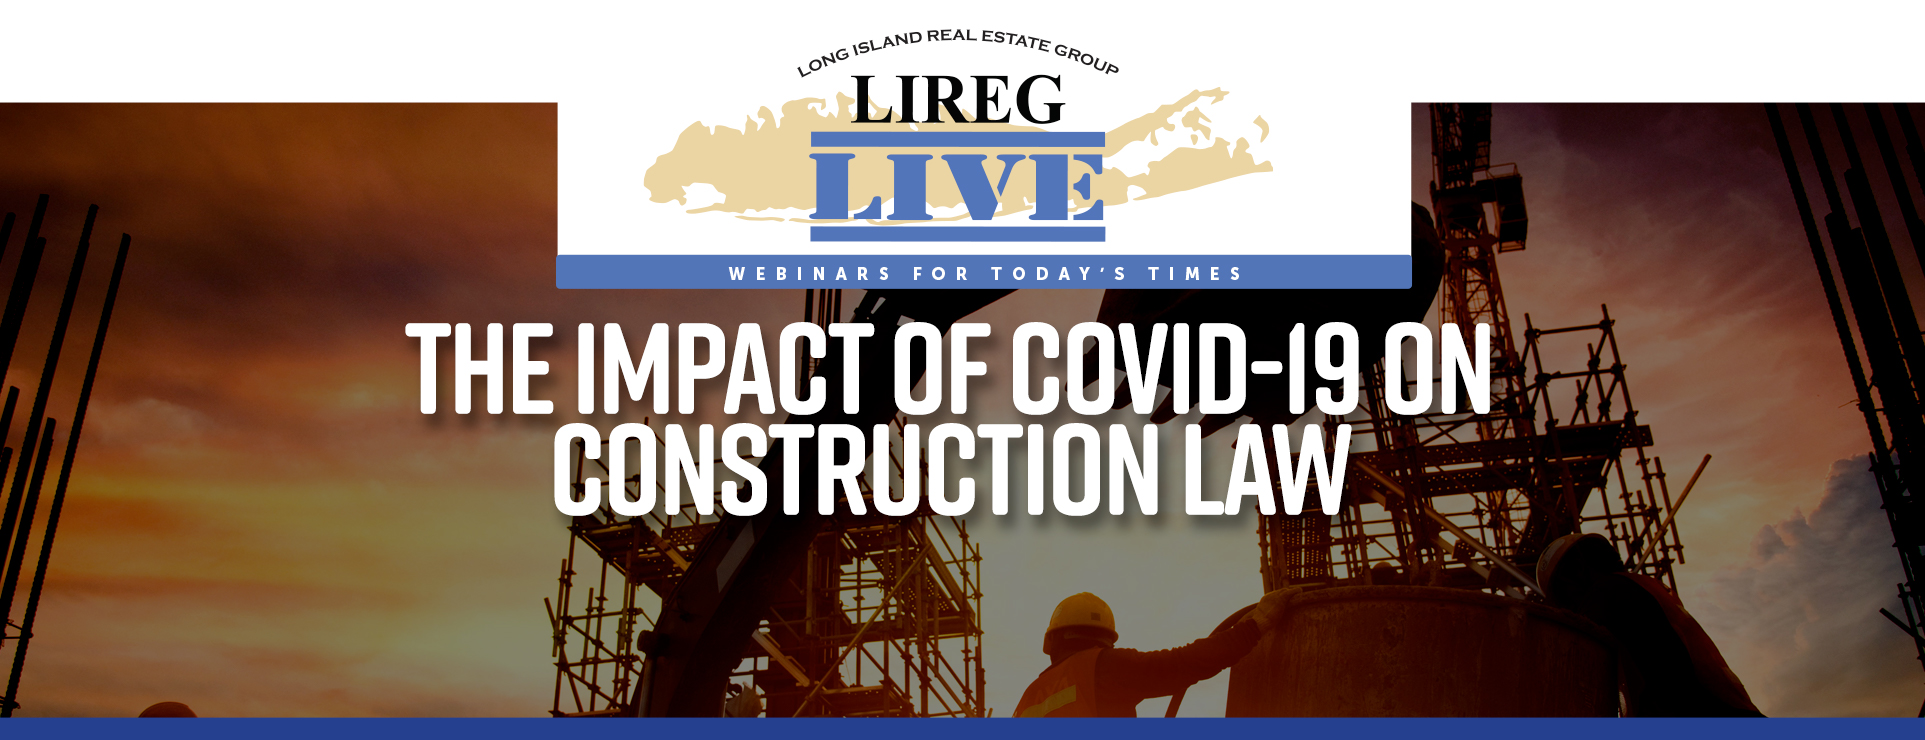 THE IMPACT OF COVID-19 ON CONSTRUCTION LAW